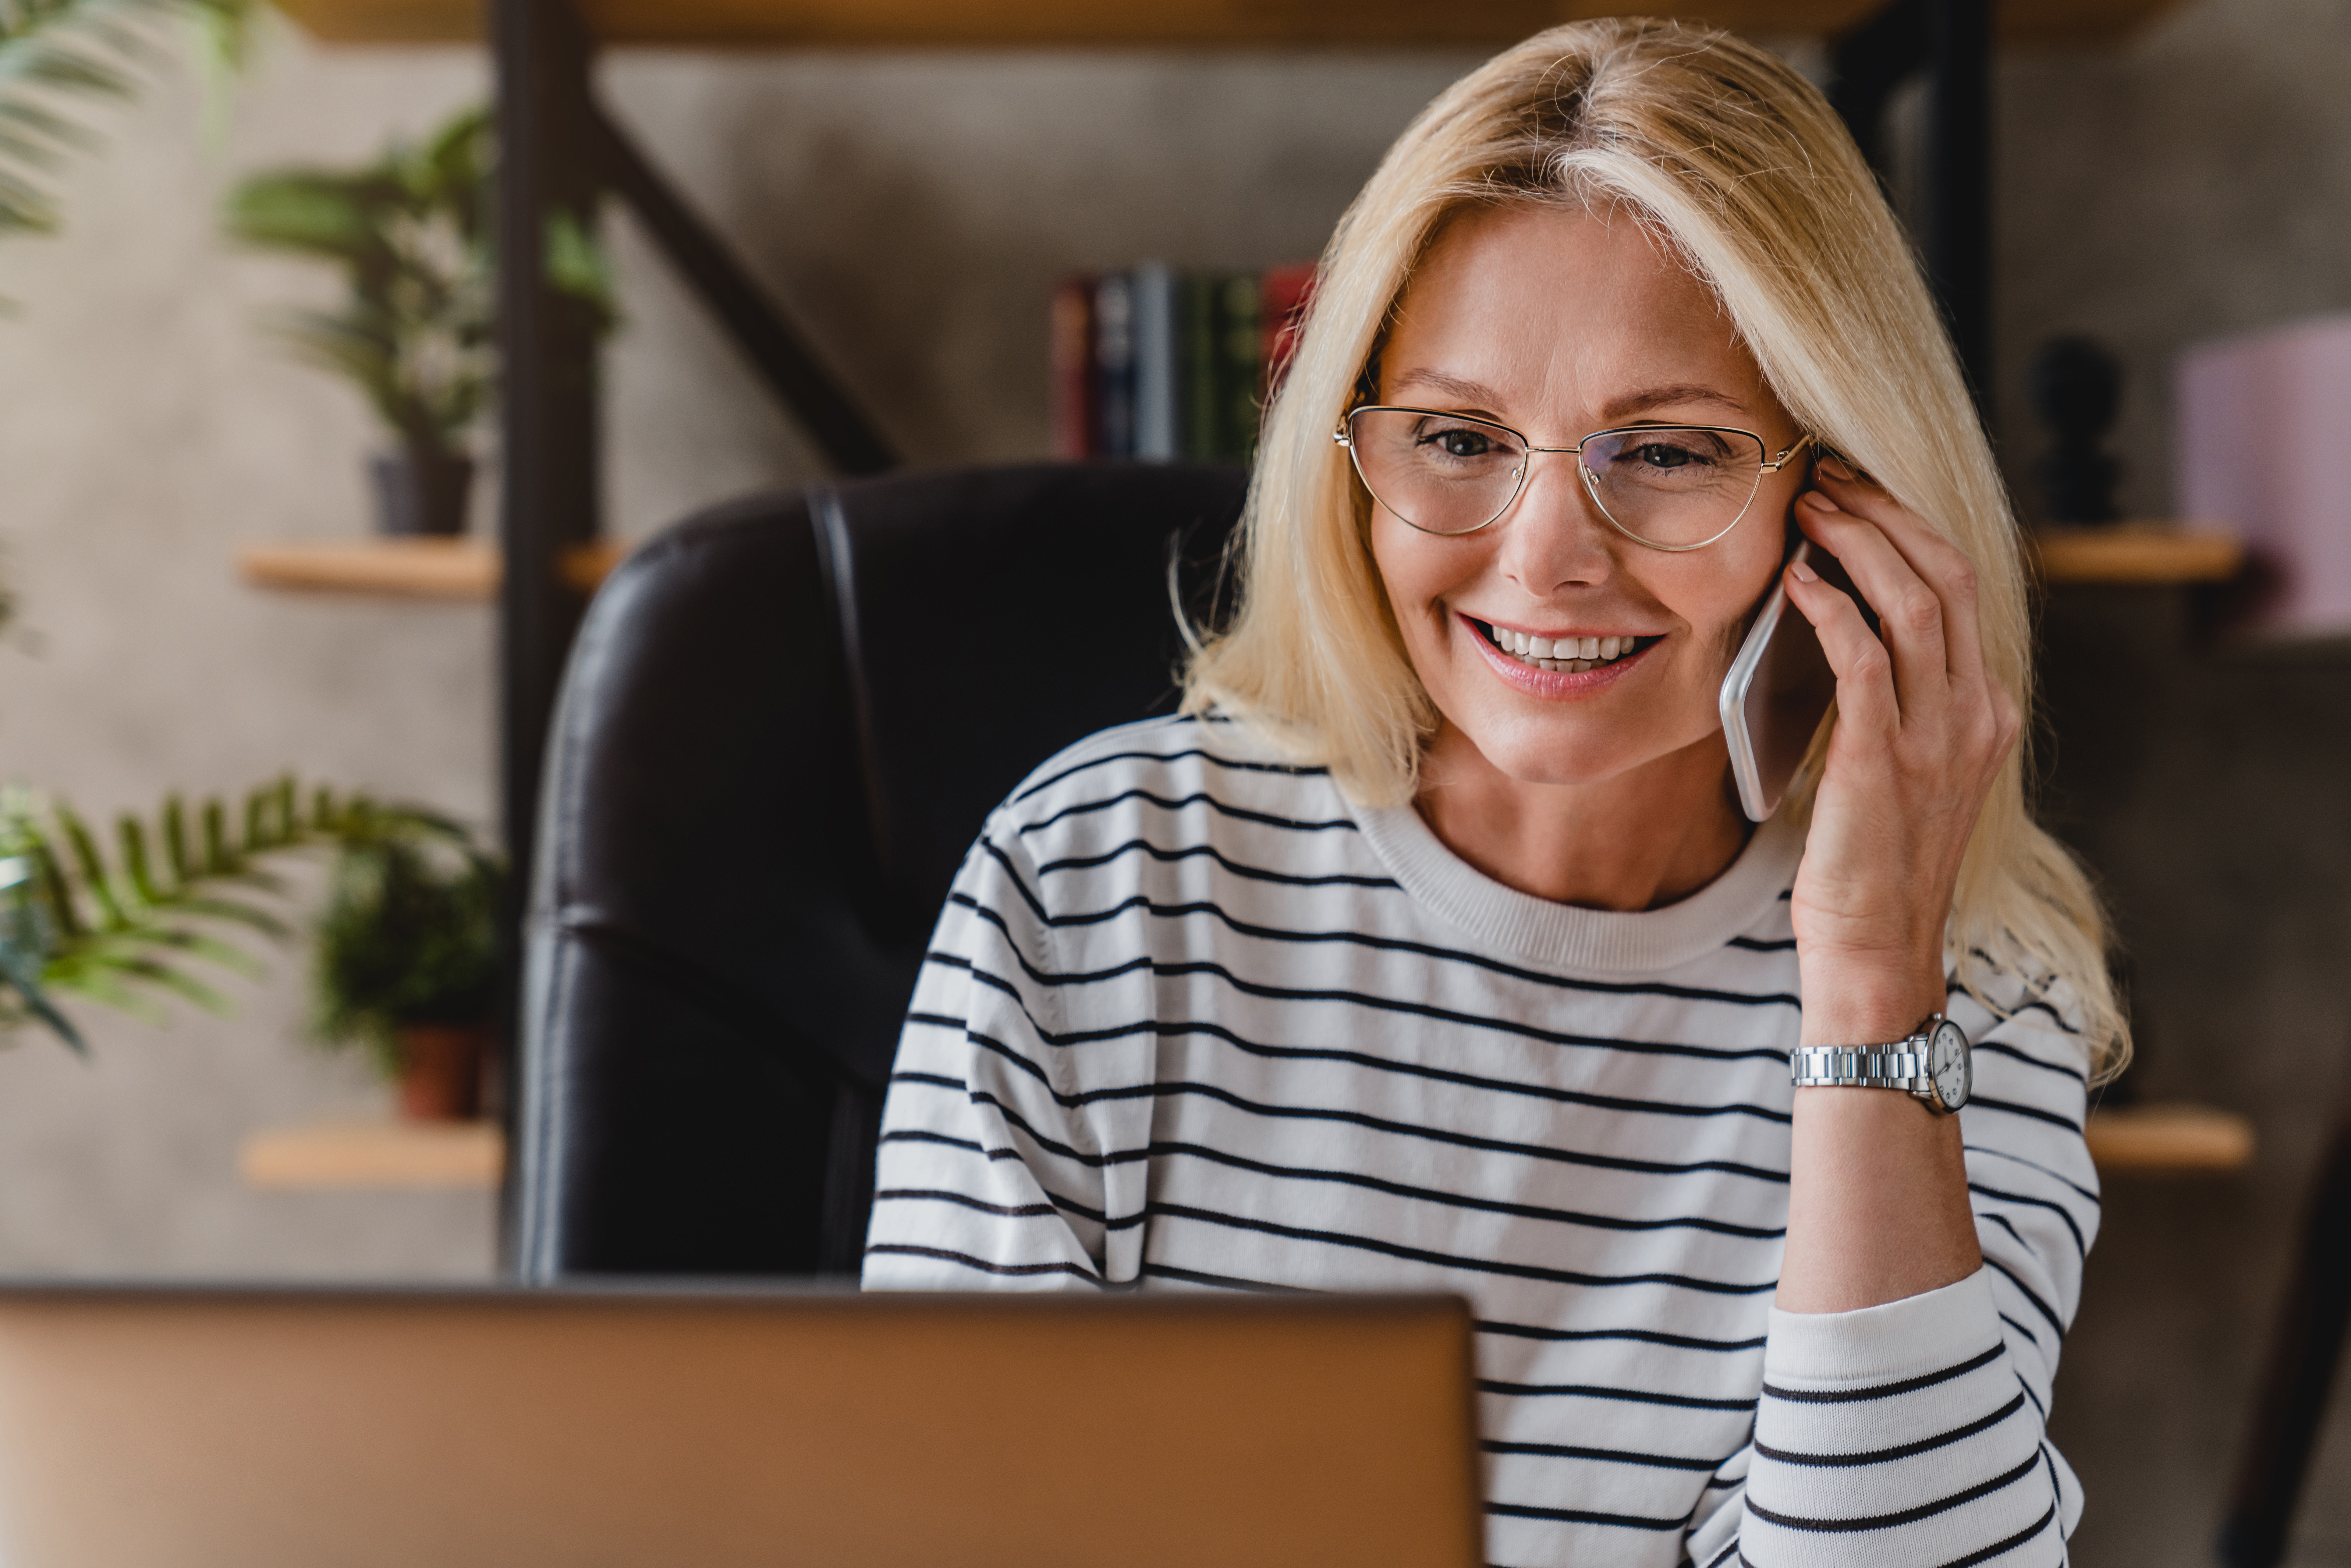 friendly woman on phone in home office